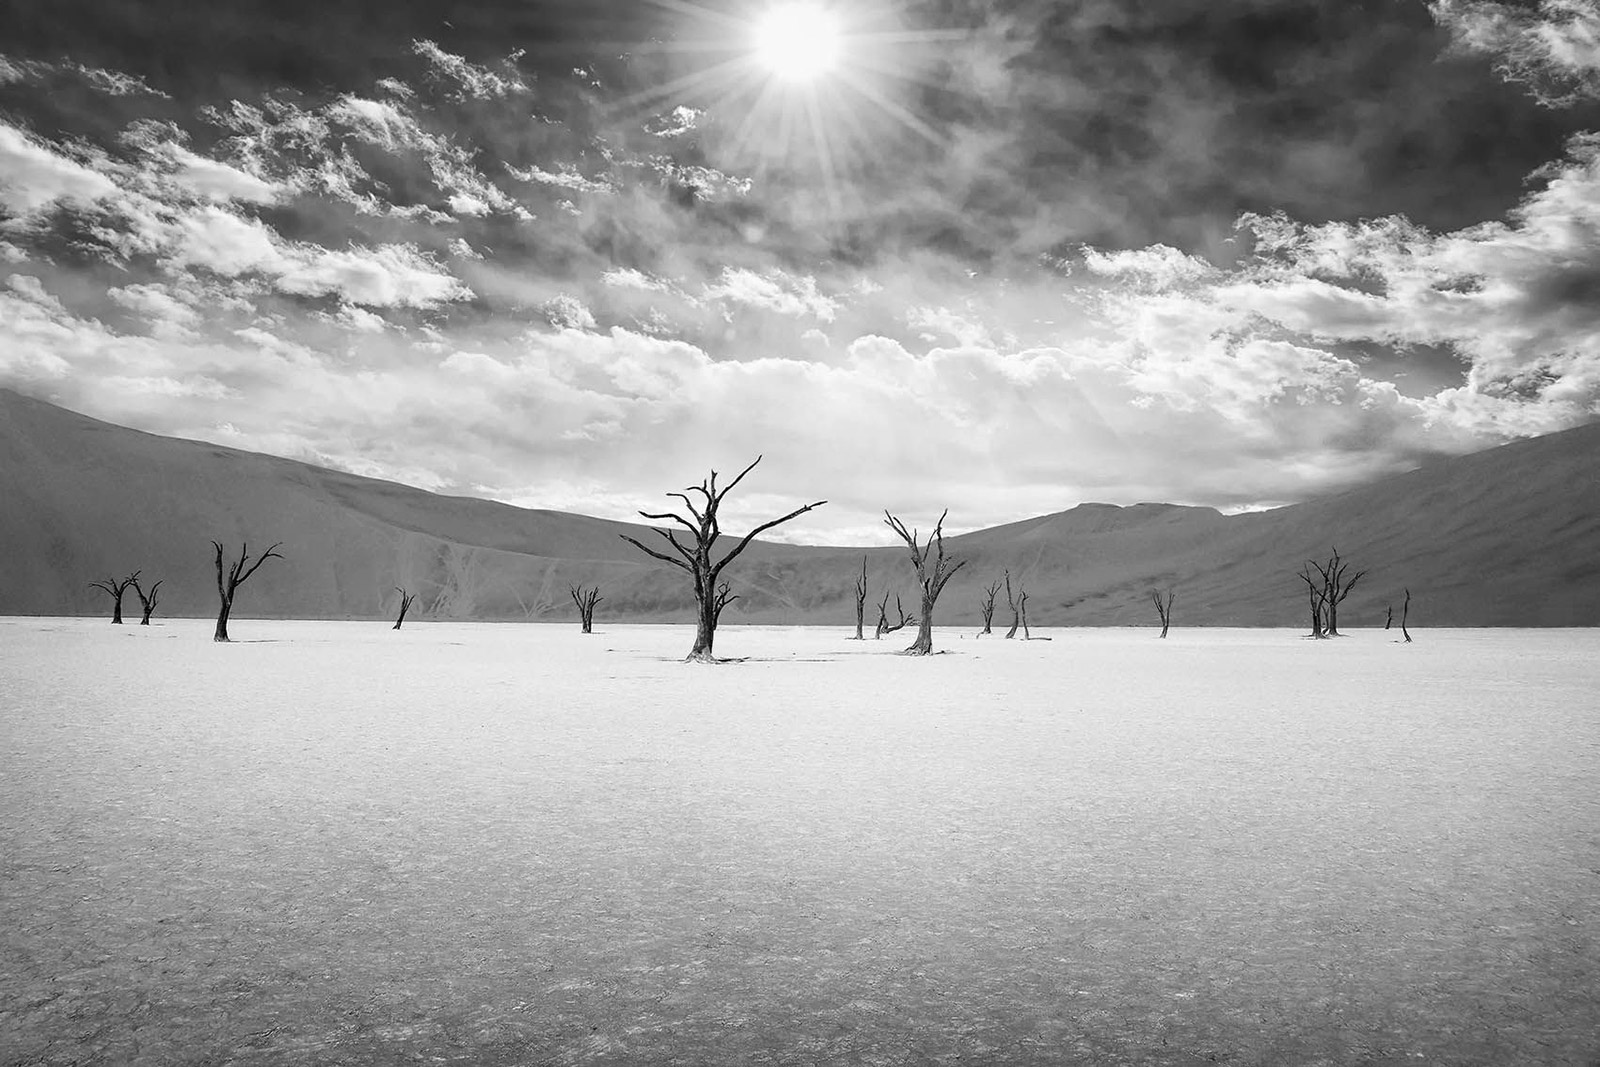 The boiling sun rising over the dead trees of Sossusvlei, Namibia ©Björn Persson